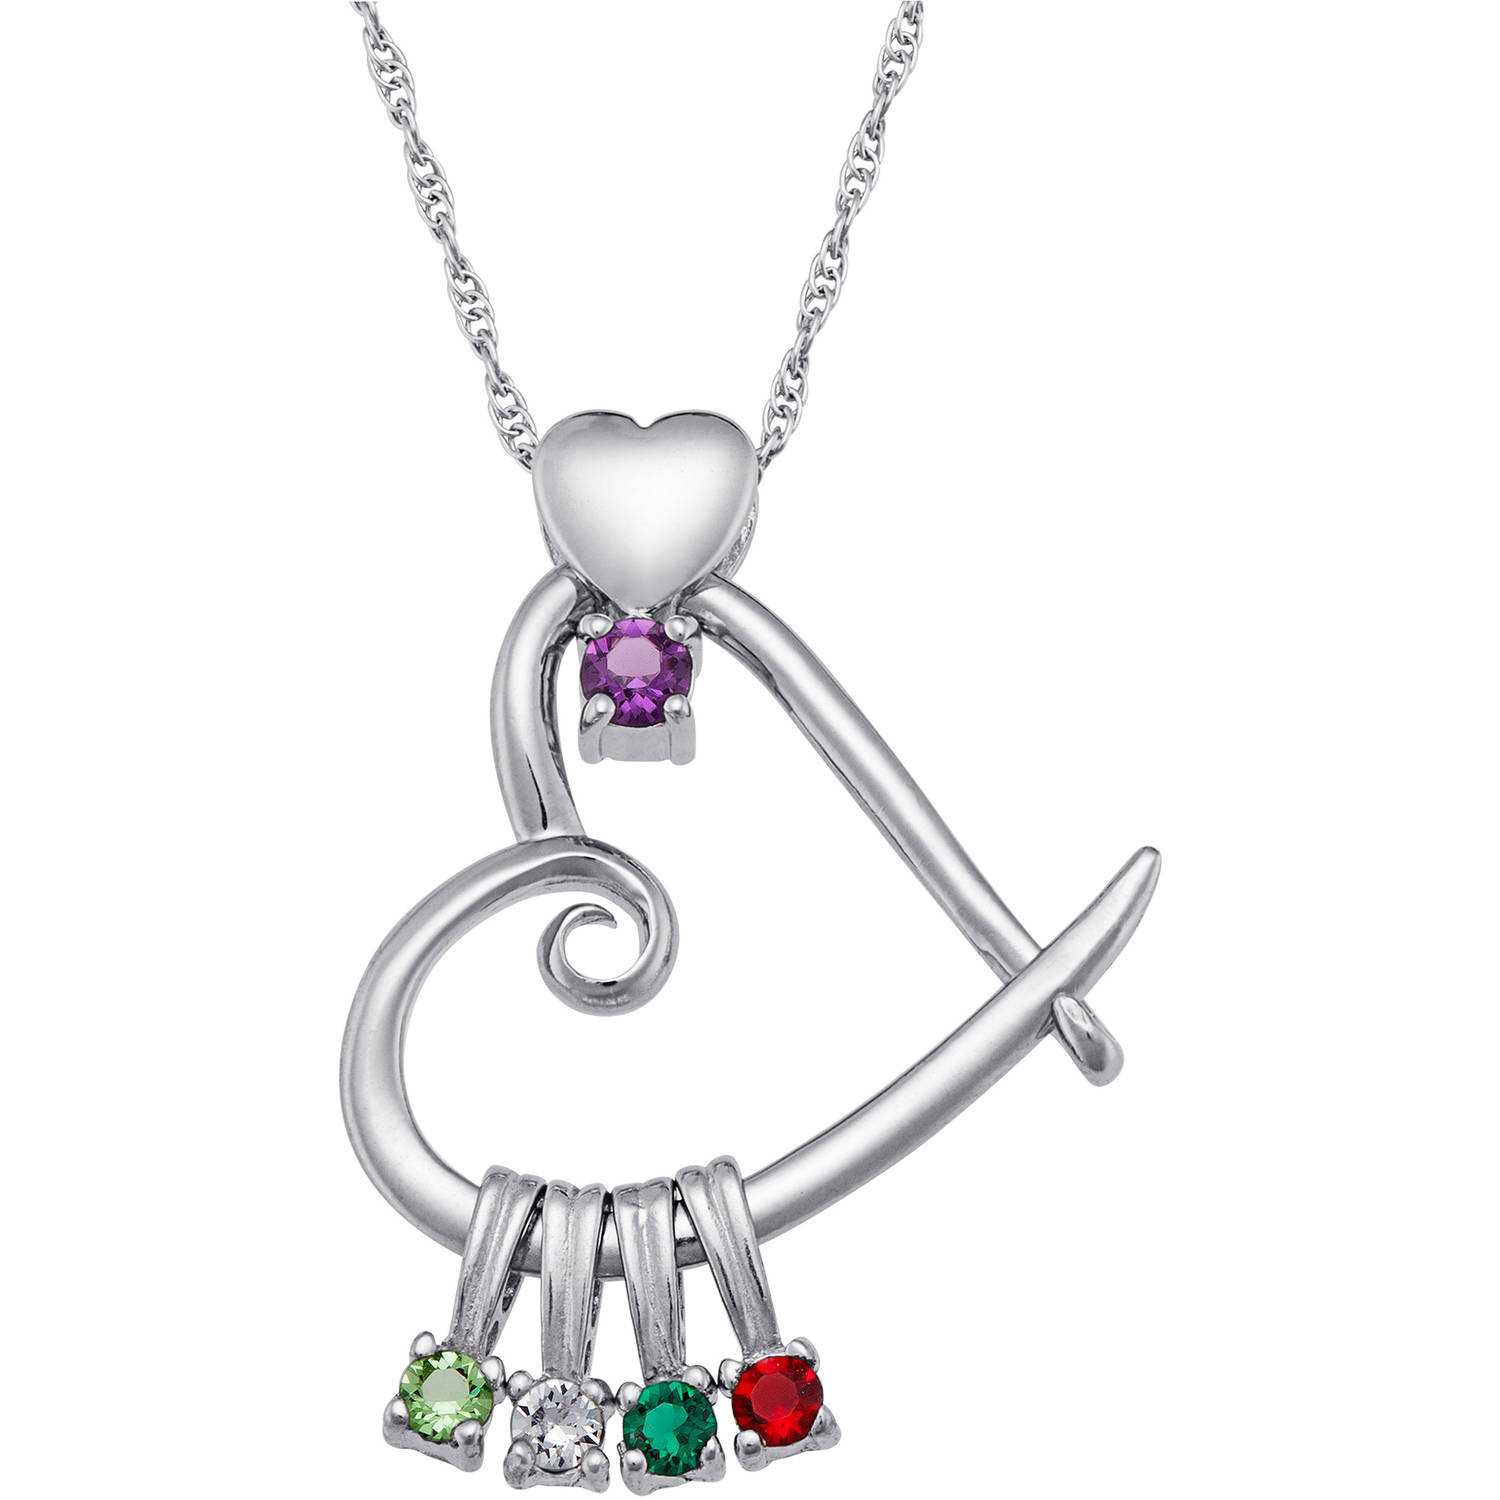 Personalized Sterling Silver or 14K Gold over Silver Mother's Birthstone Heart Pendant, 20""